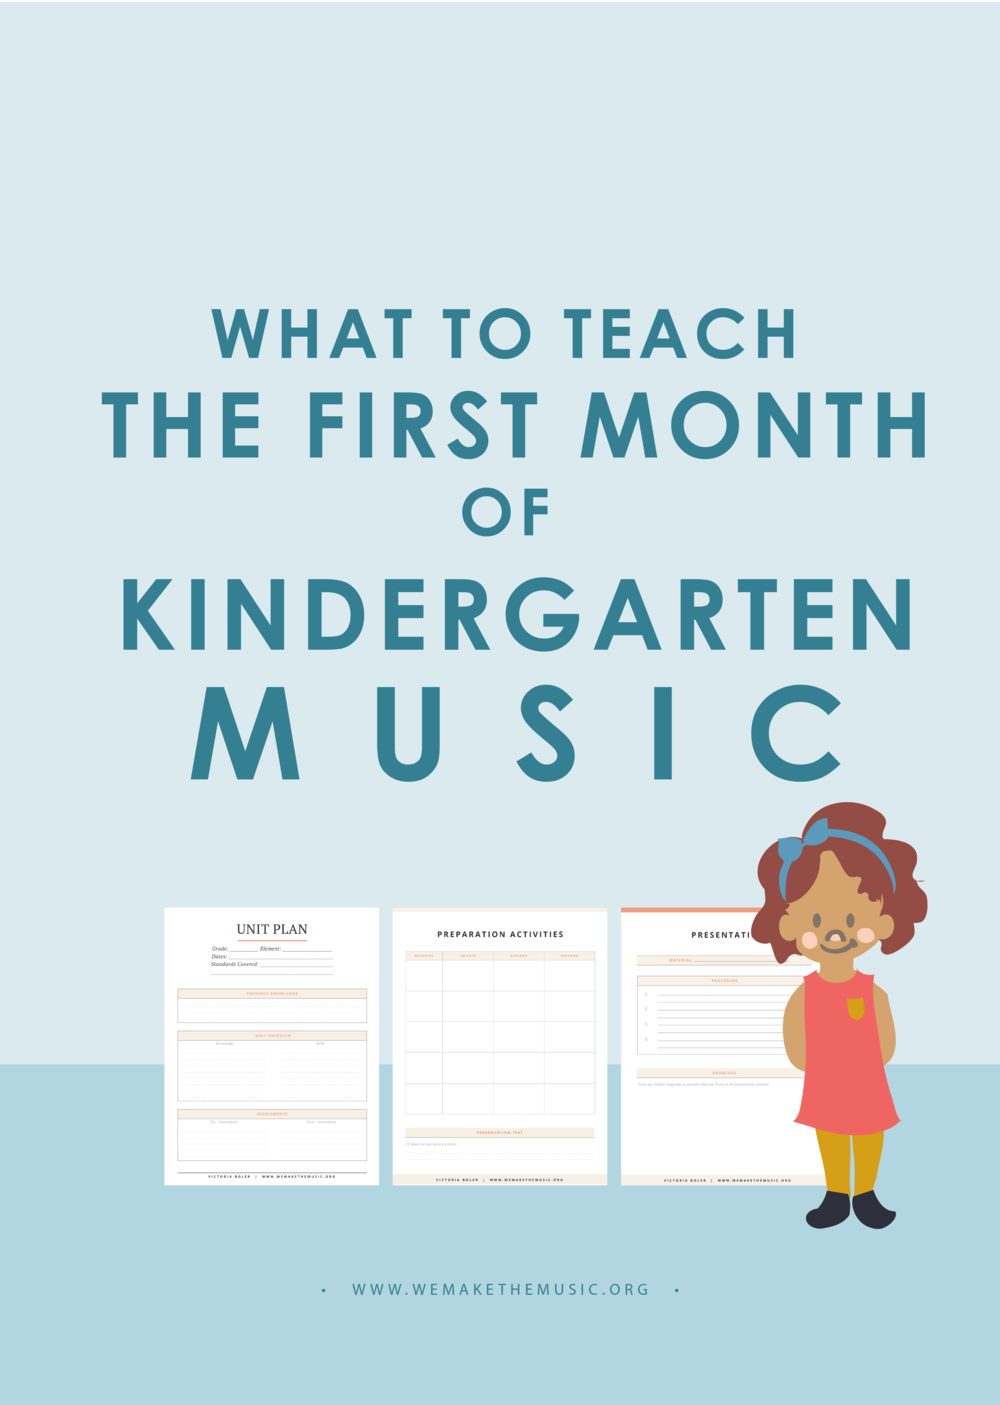 What to Teach The First Month of Kindergarten Music_9-26 Kindergarten Music.png